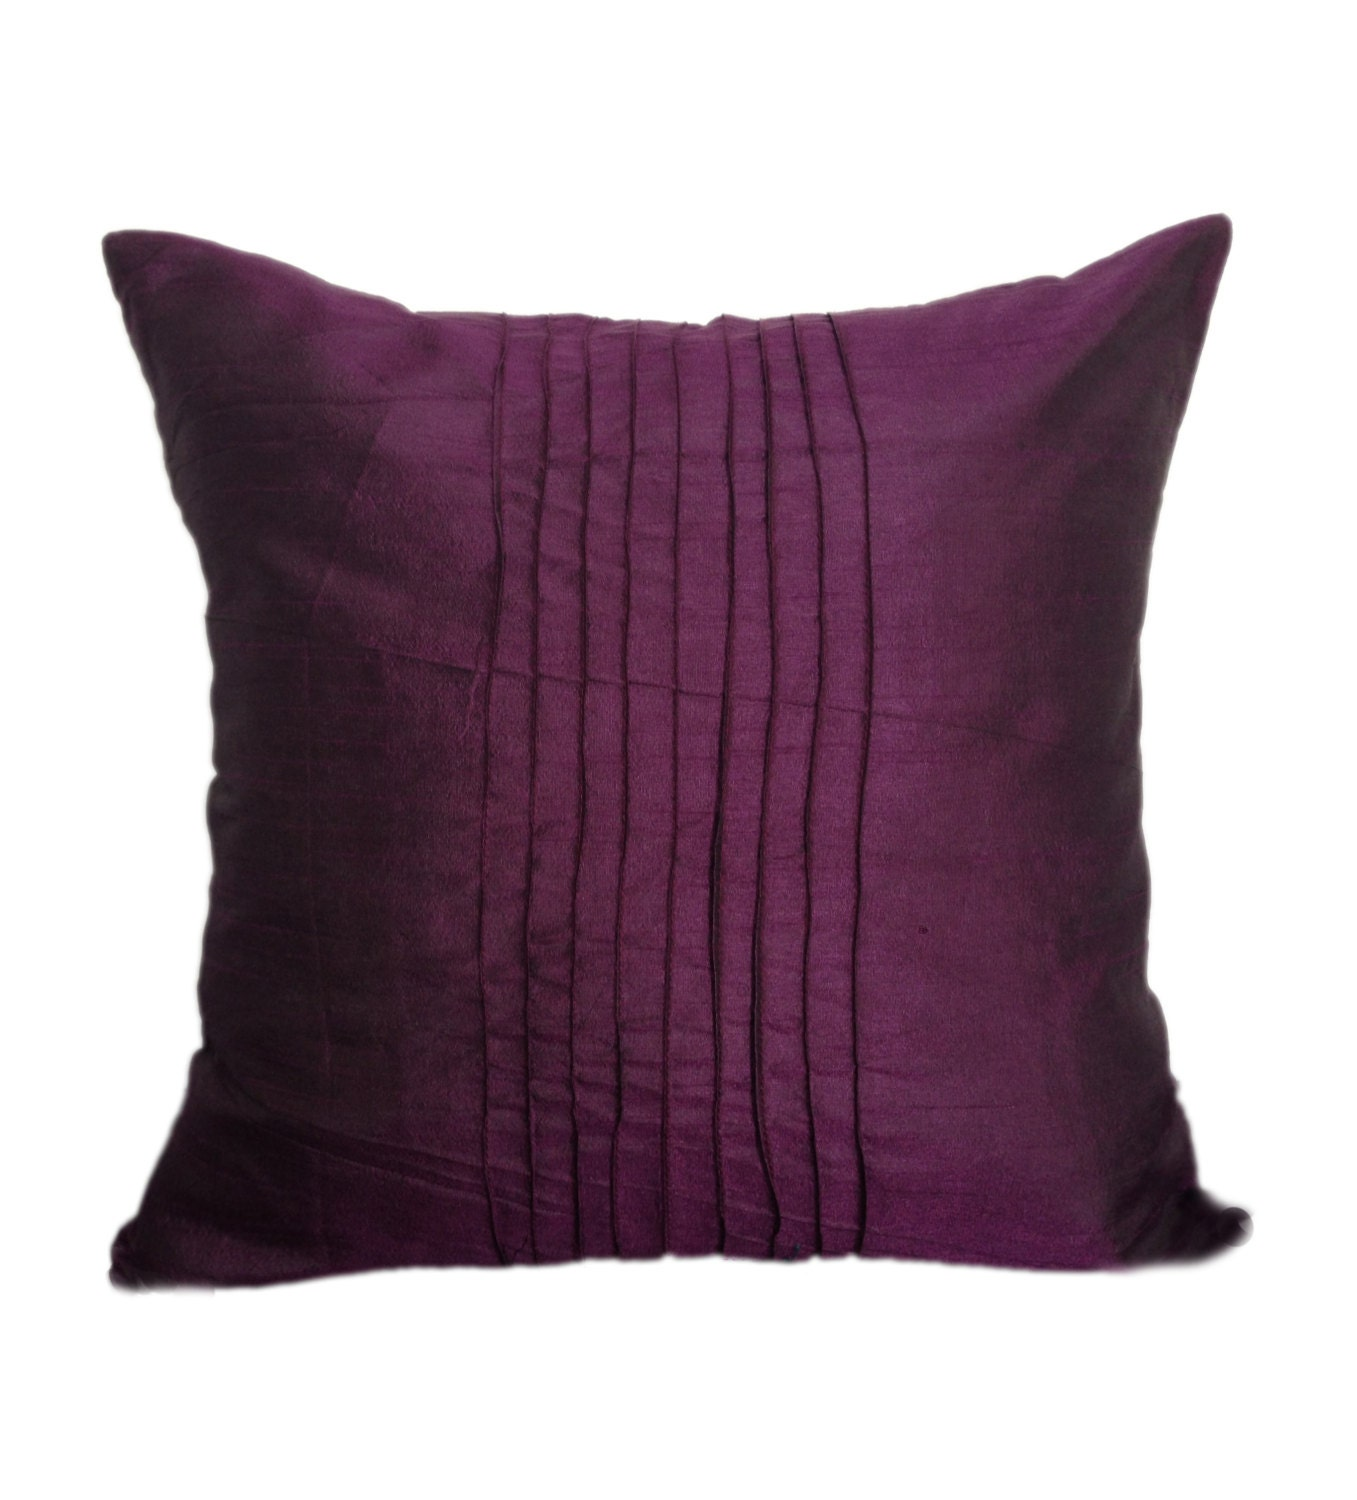 Purple Euro Pillow Covers Bing Images